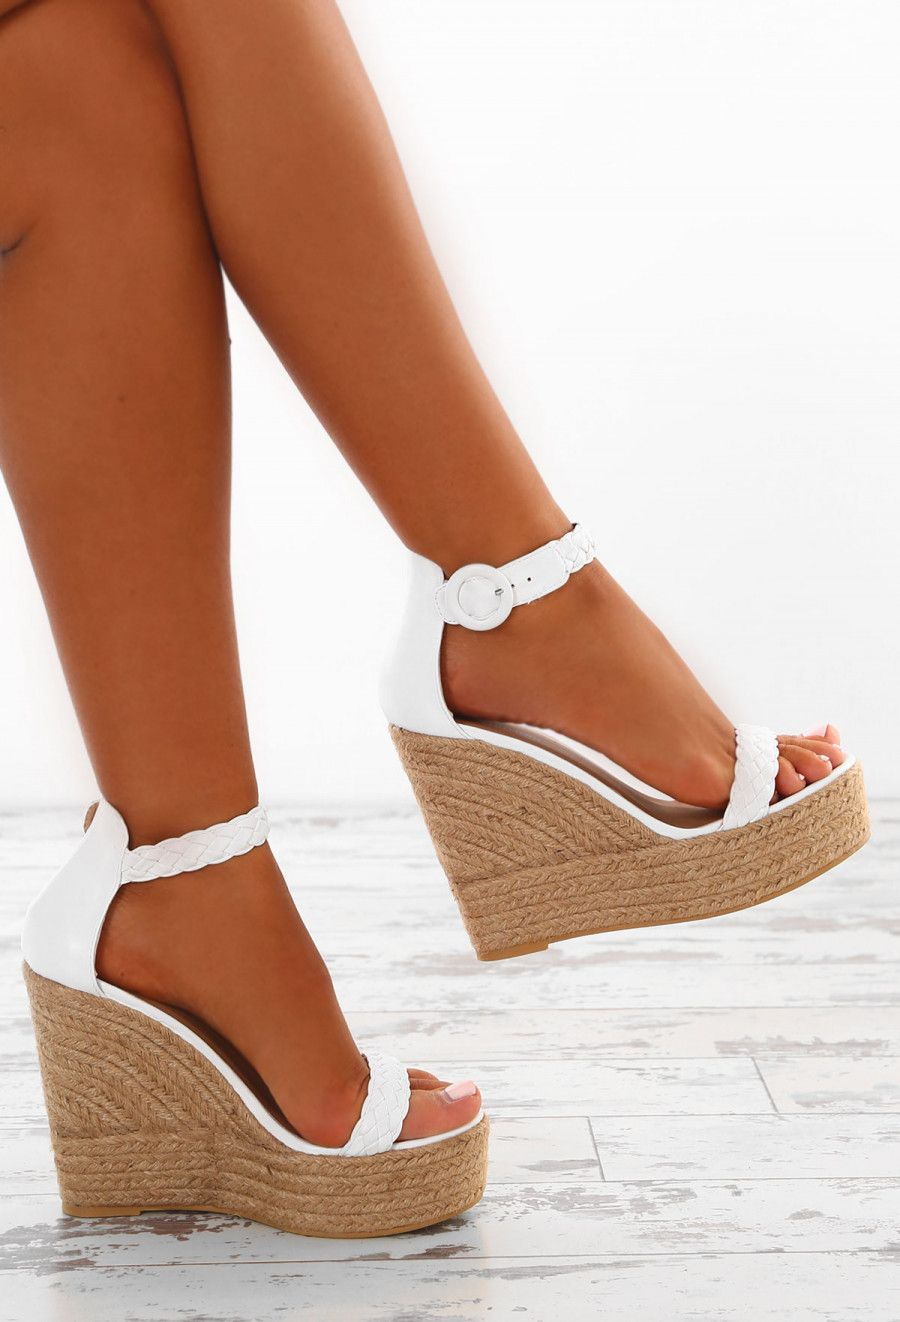 dbccf41bd Deepest Desire White Woven Platform Wedges - UK 3 | Shoes | Wedge ...